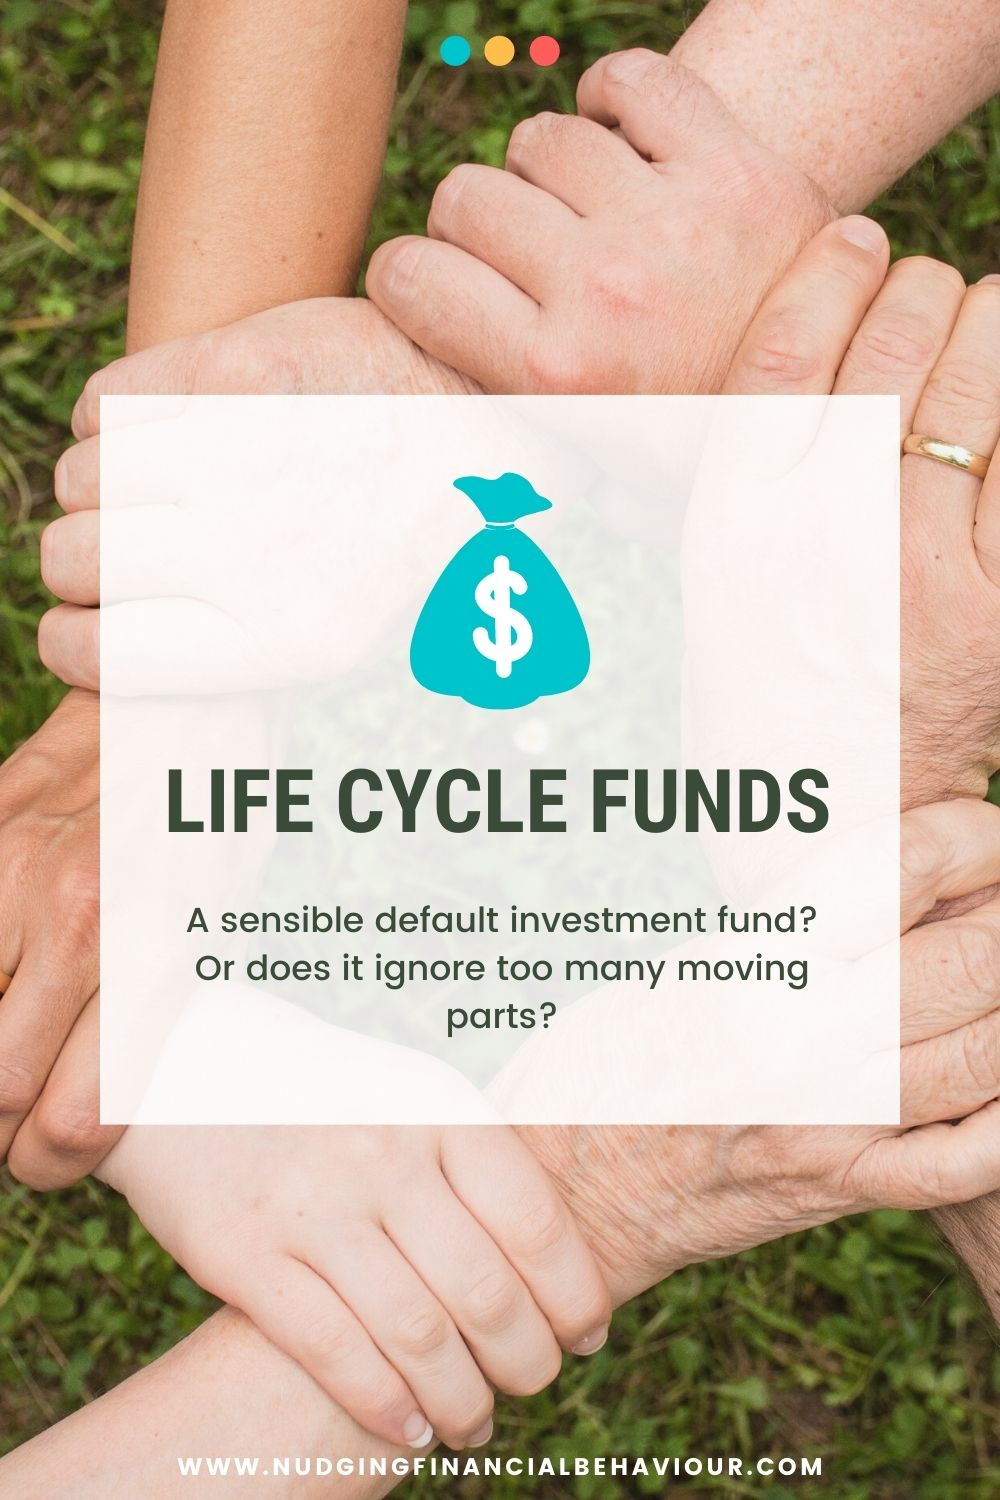 Life cycle funds